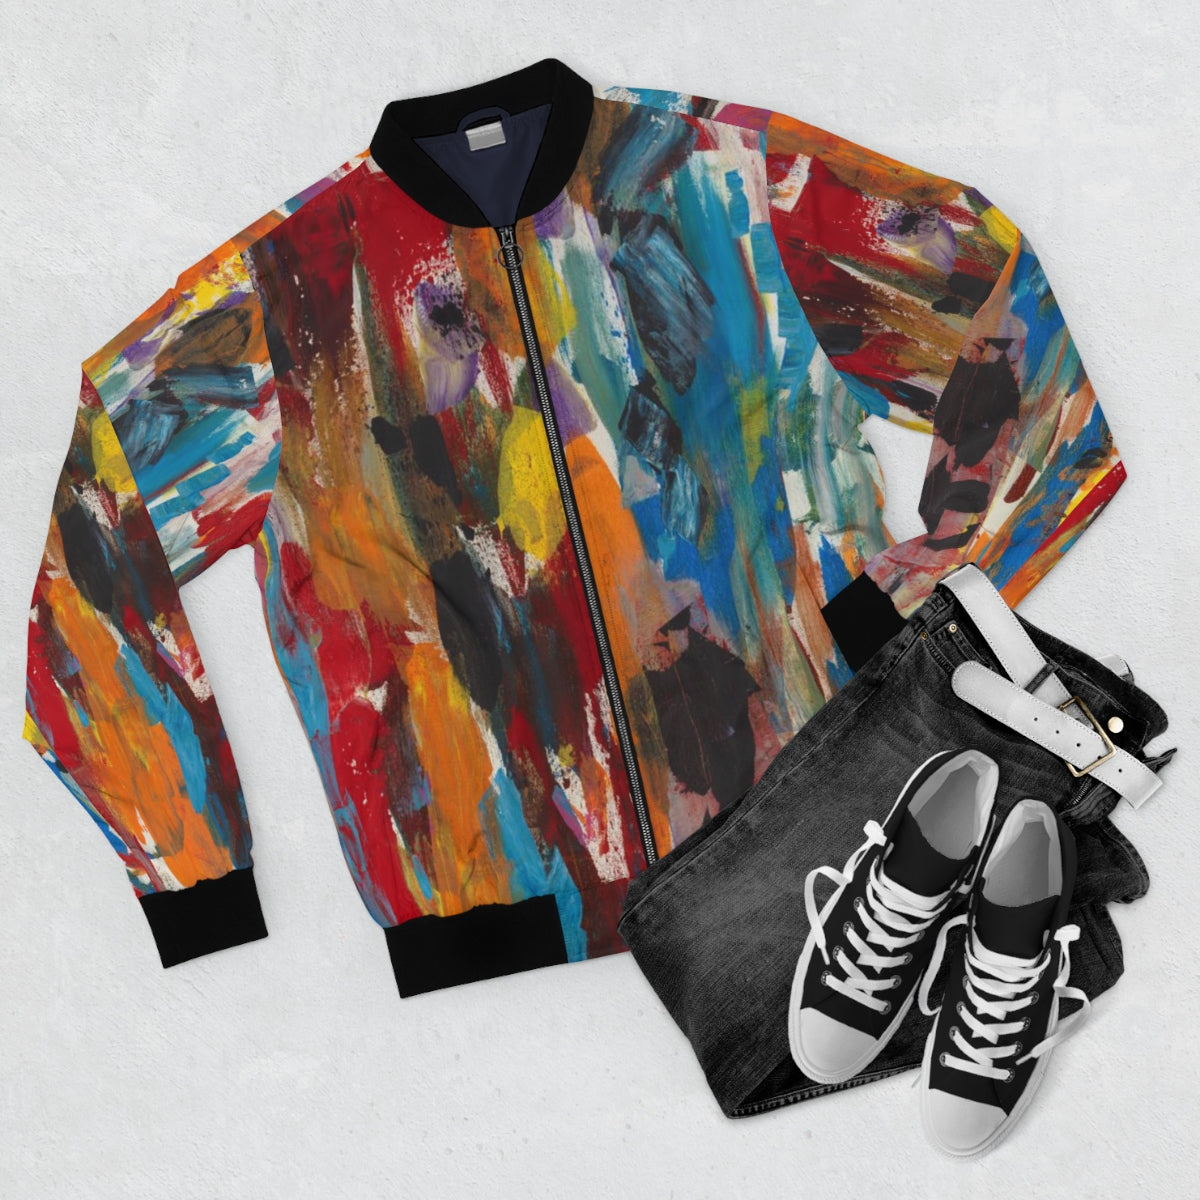 COLOR FUSION UNISEX  Bomber Jacket  SIZES  XS - 3 XL